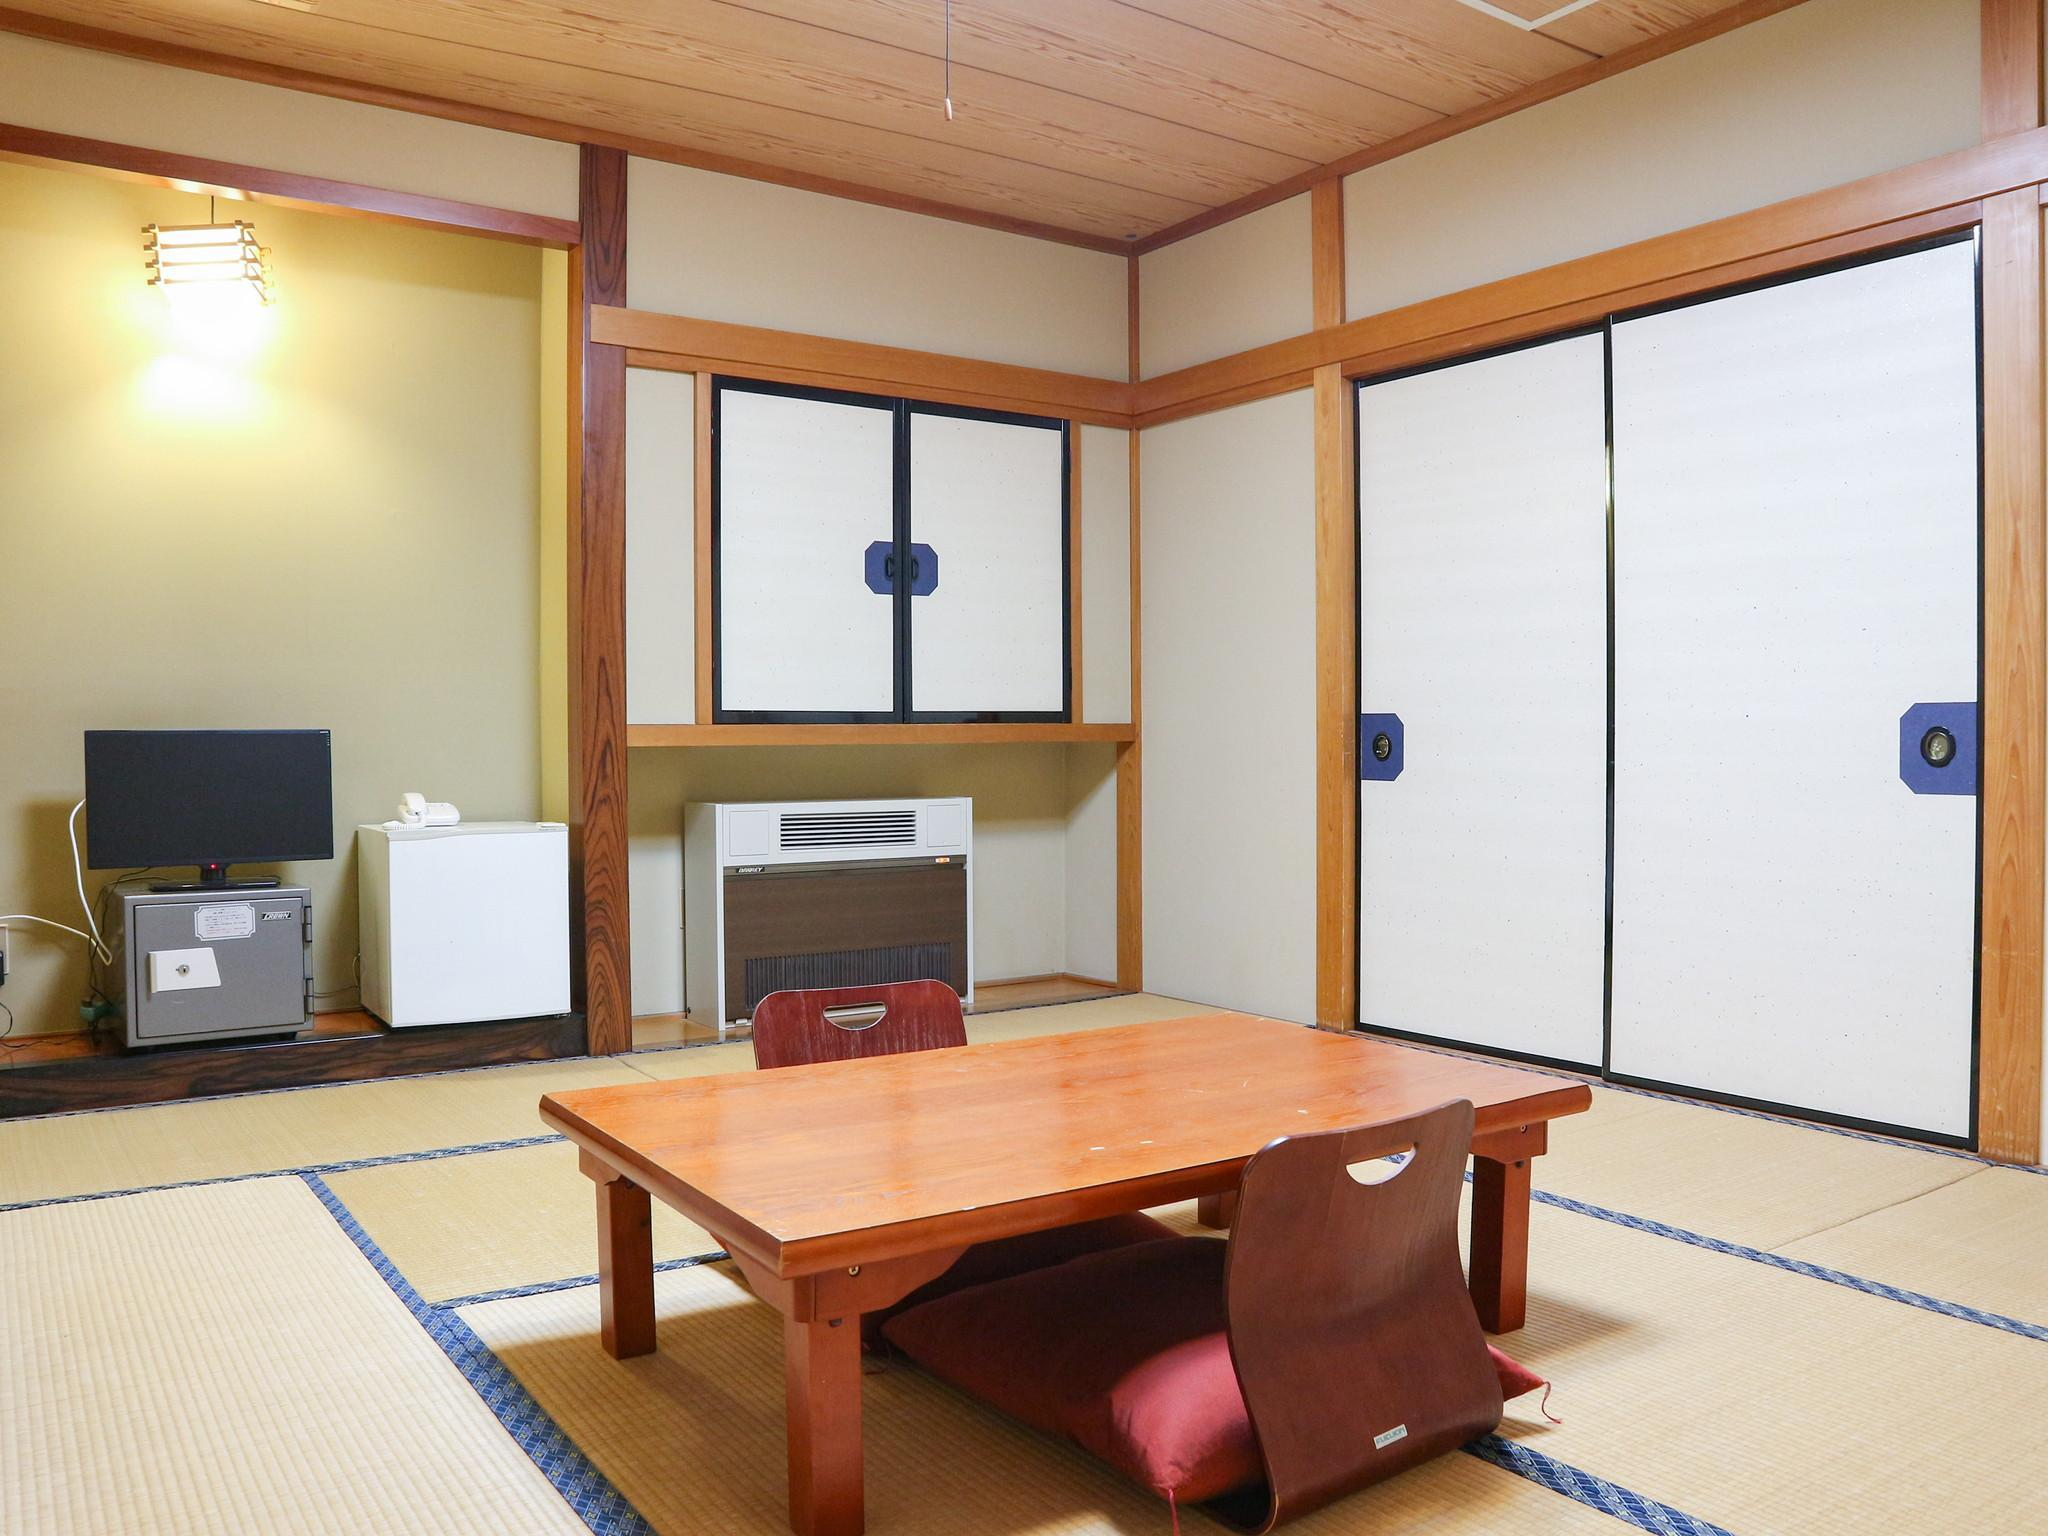 zen interior design on a bud interior design services on a budget 奥日光湯元温泉 万蔵旅館 (Manzo Ryokan)|クチコミあり - 日光